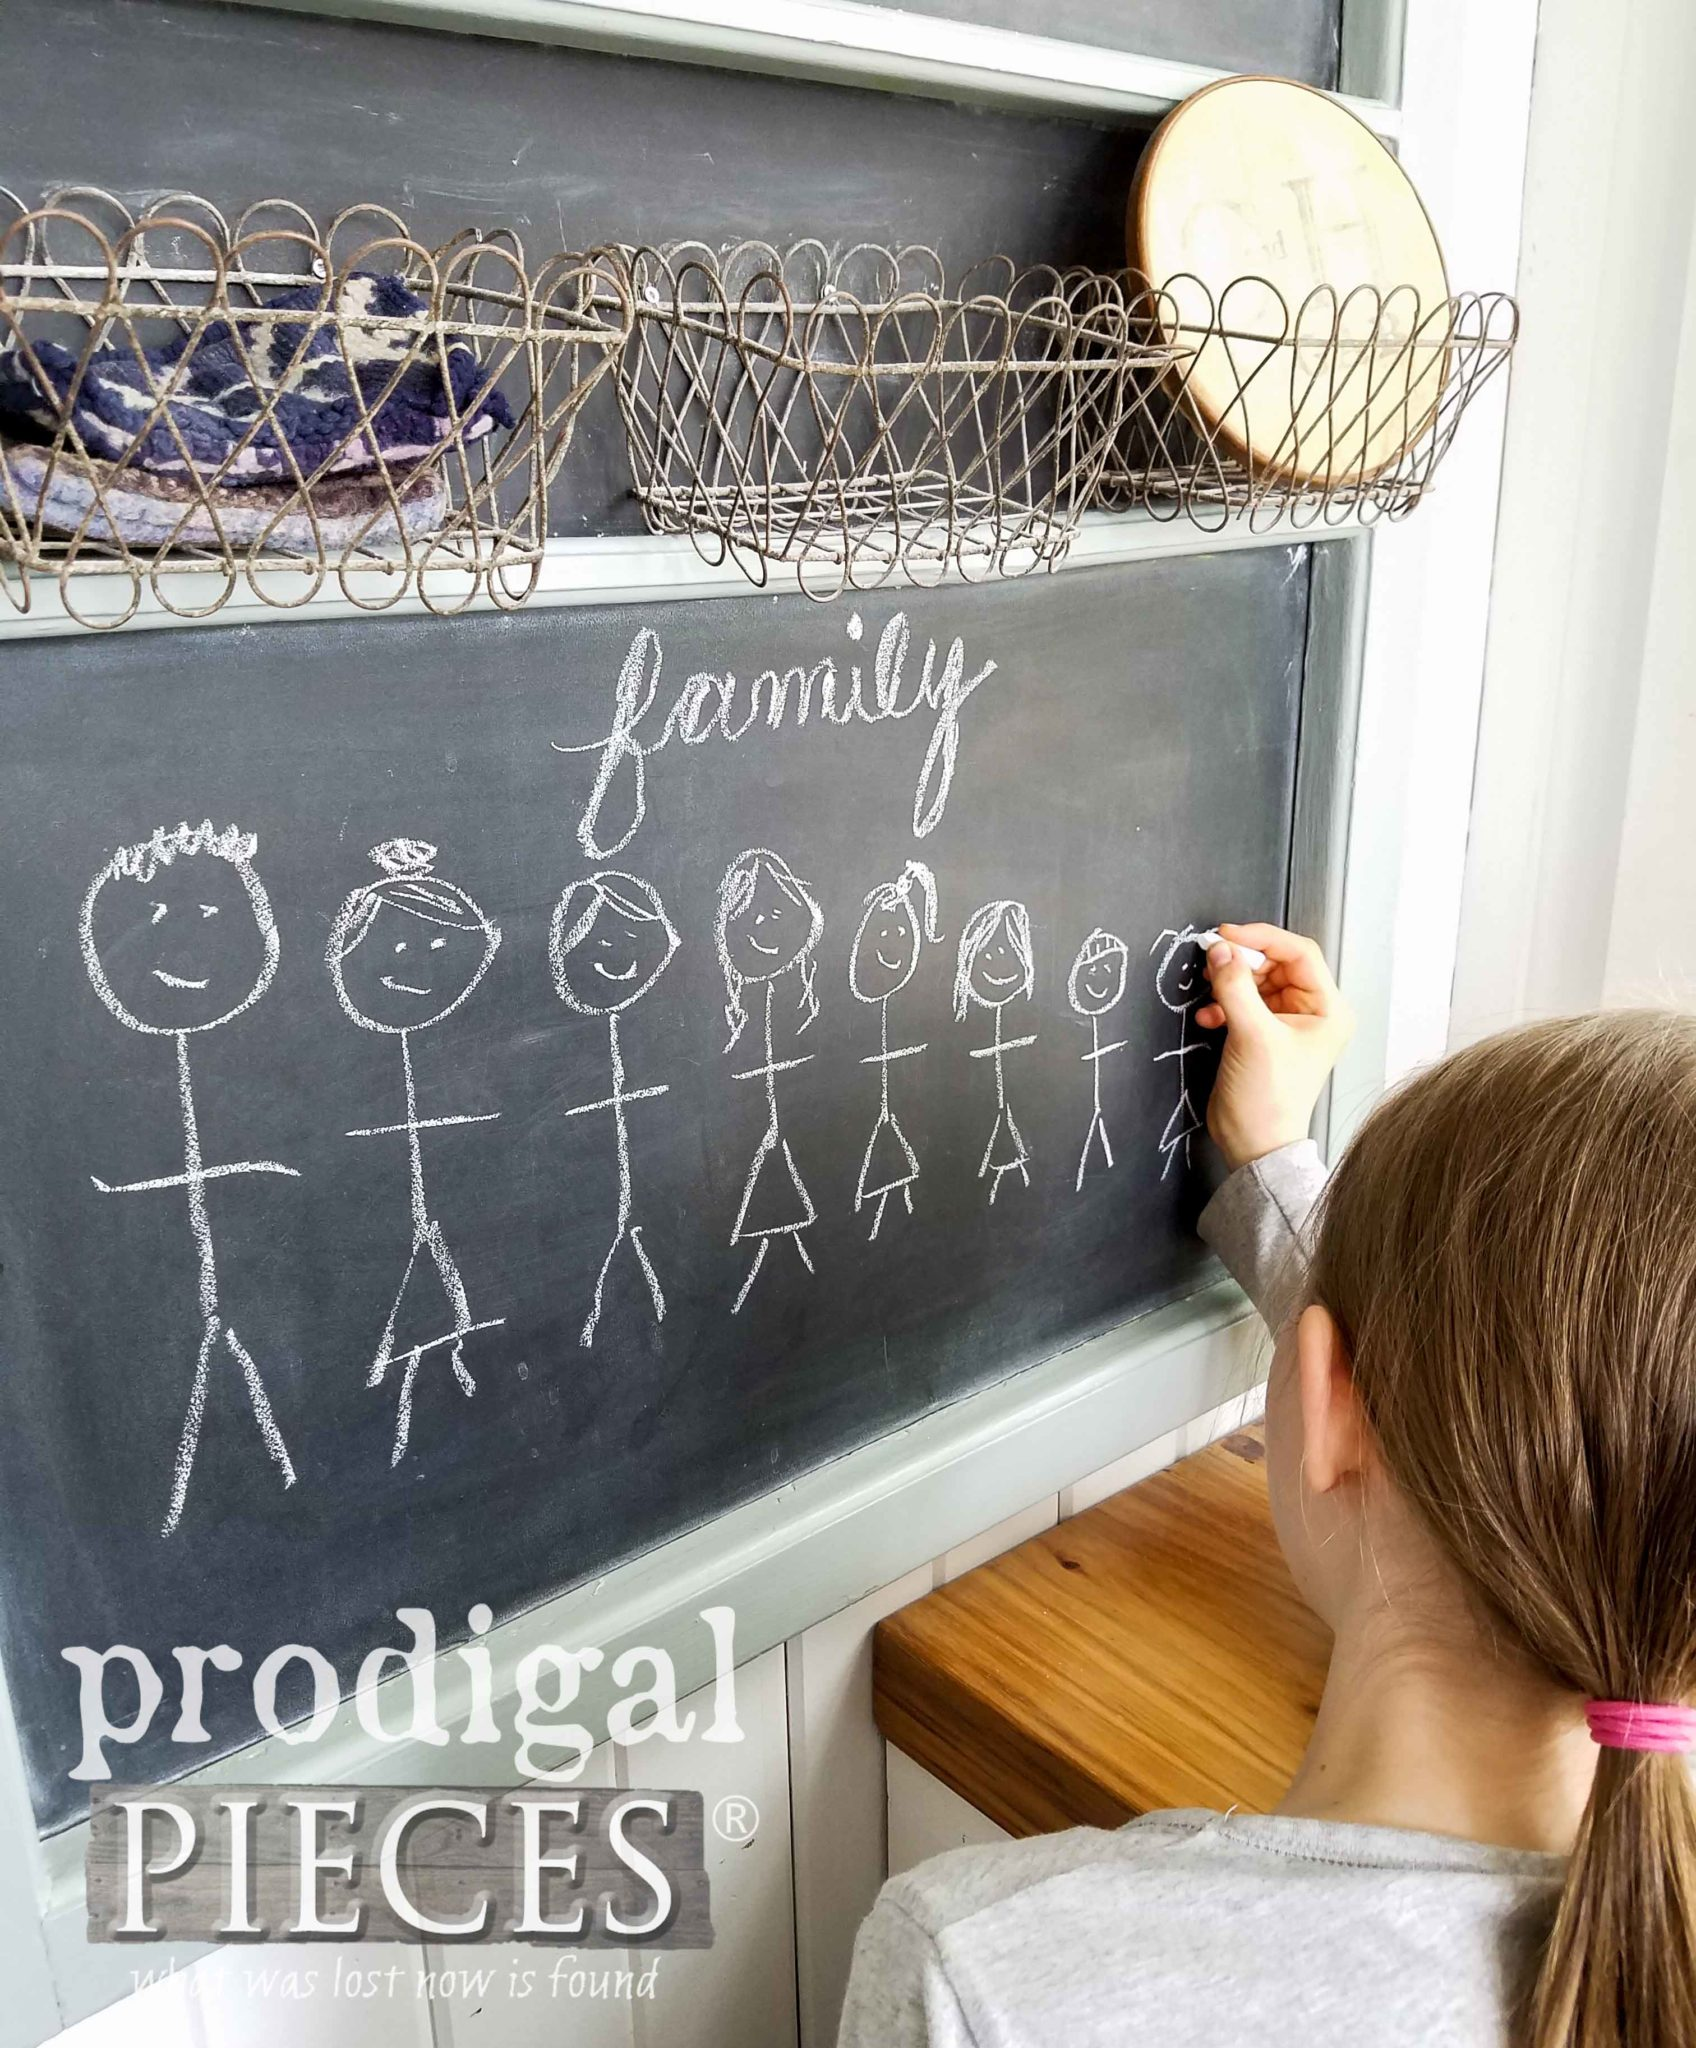 Hand-drawn Chalkboard Art via Prodigal Pieces | prodigalpieces.com